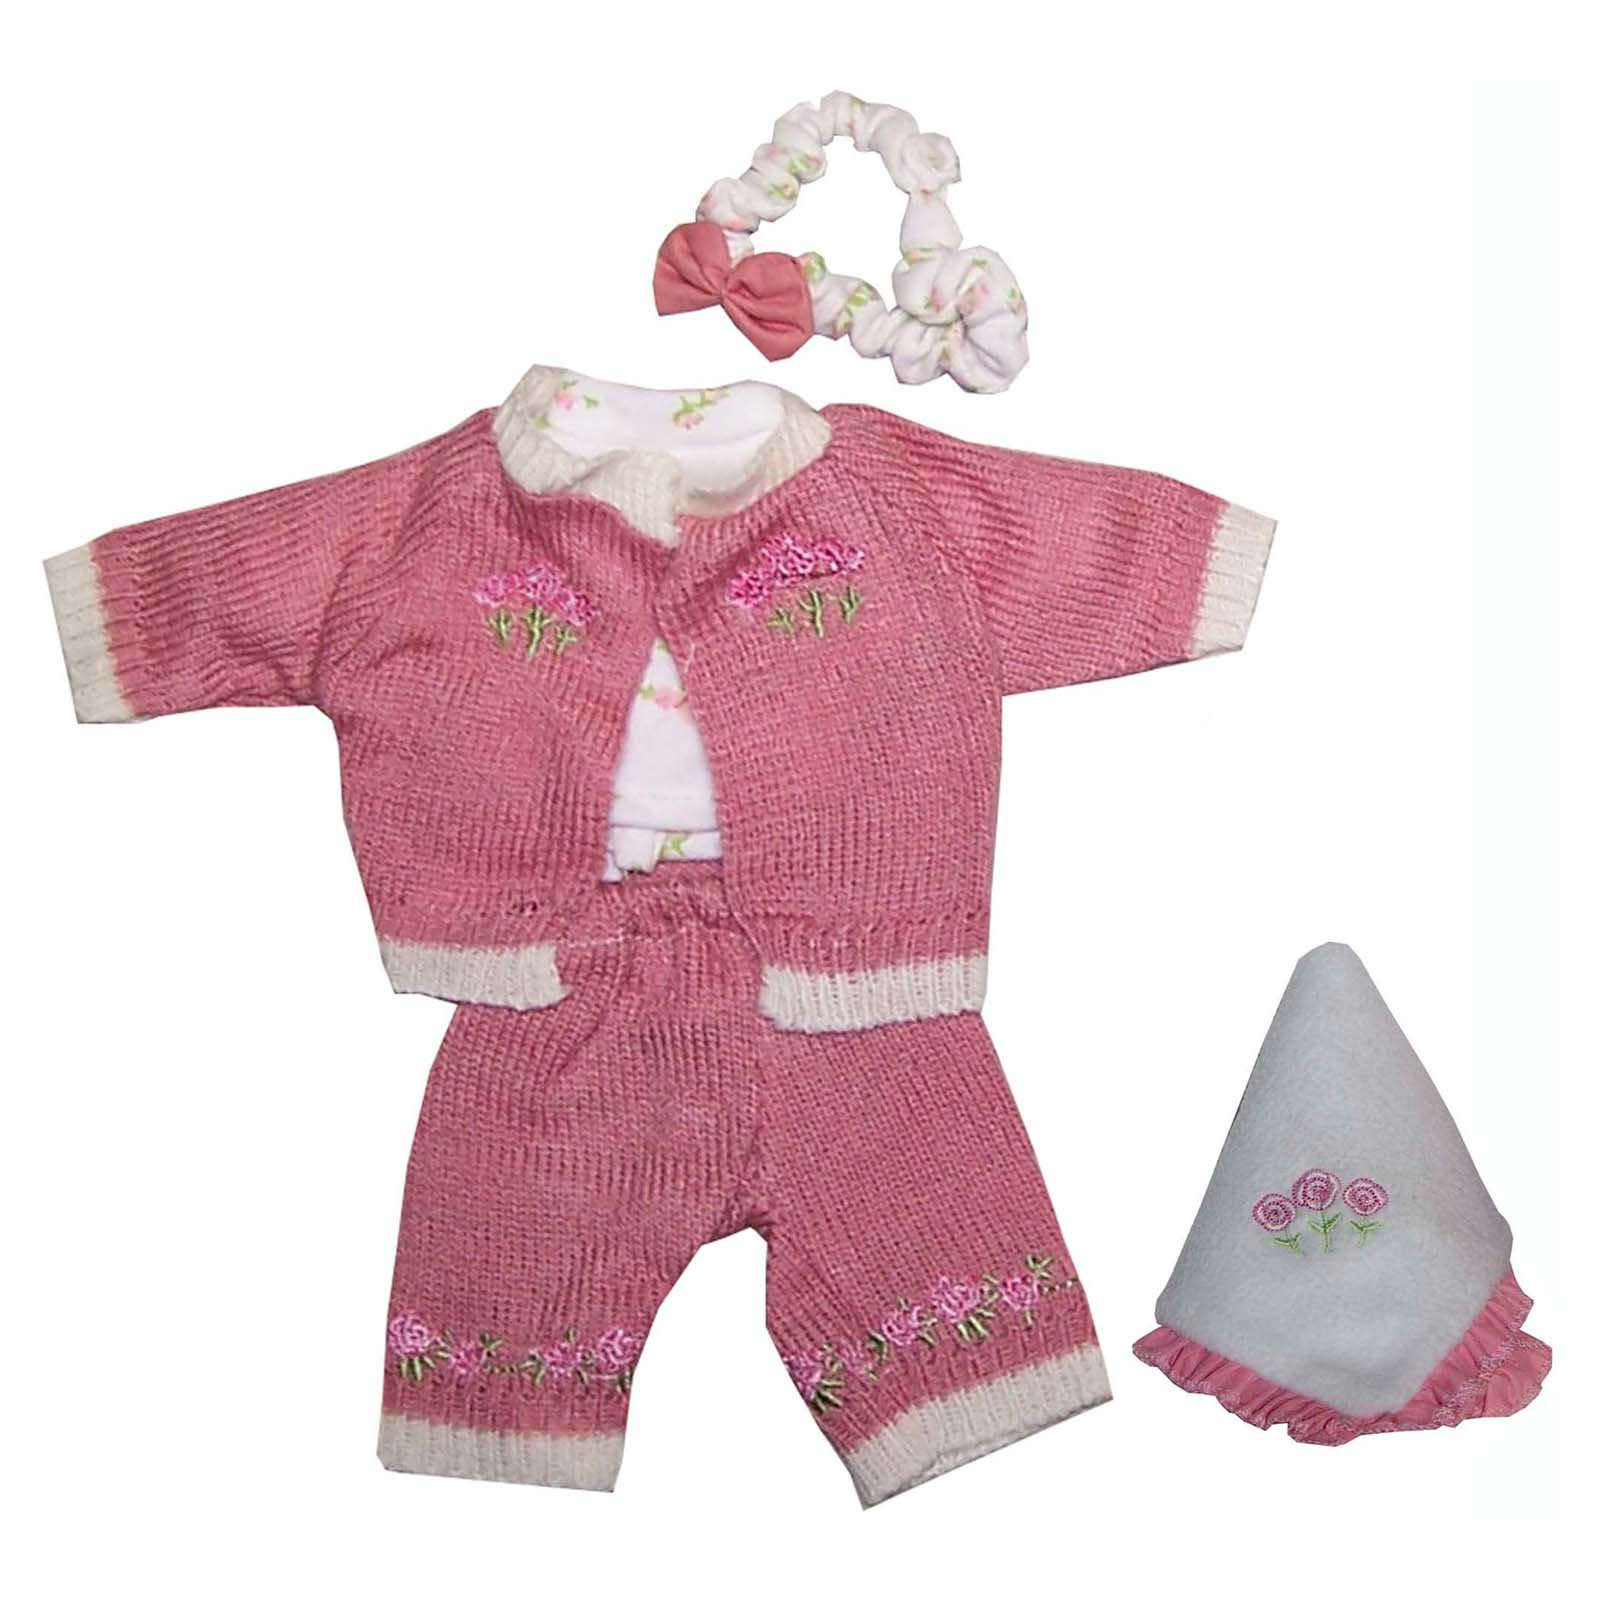 Molly P. Dana Doll Outfit 9 in. Doll Outfit